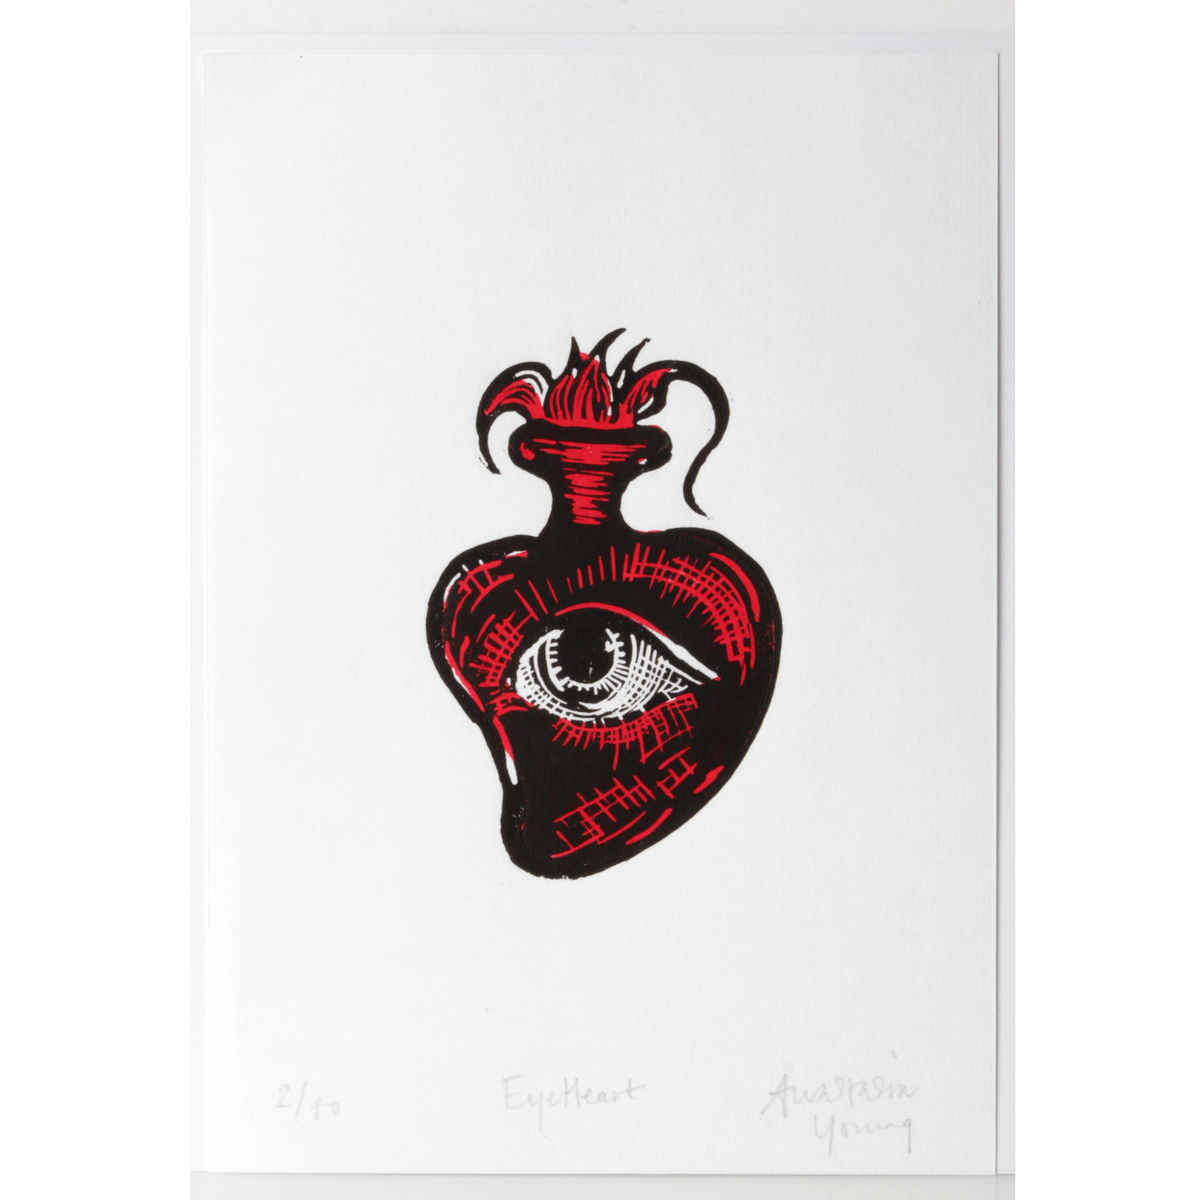 EyeHeart Black and Red Original Print Linocut - product images  of